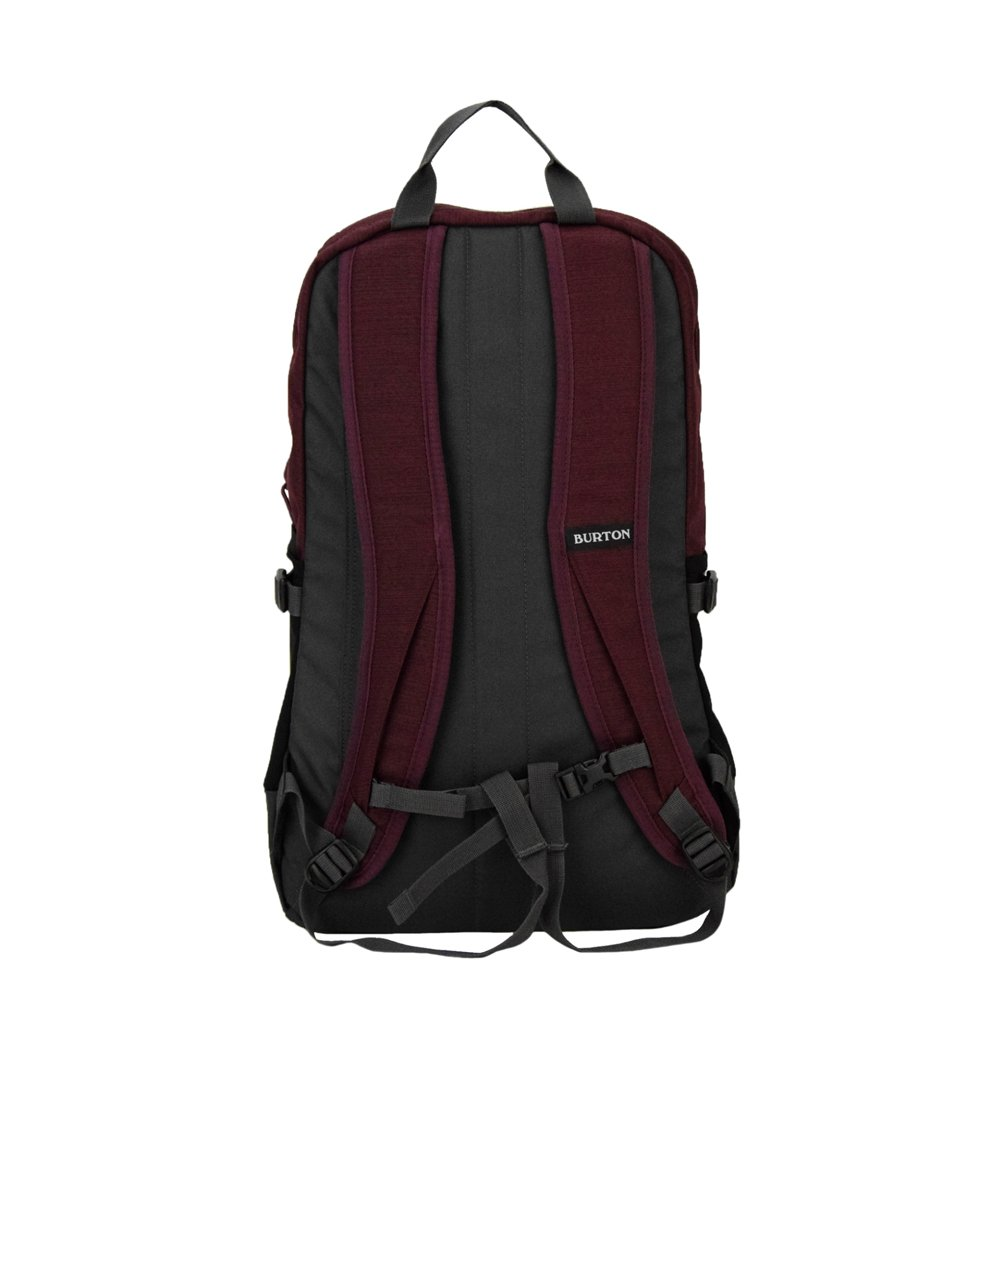 Burton Prospect 2.0 Backpack 20L (21344100500) Port Royal Slub